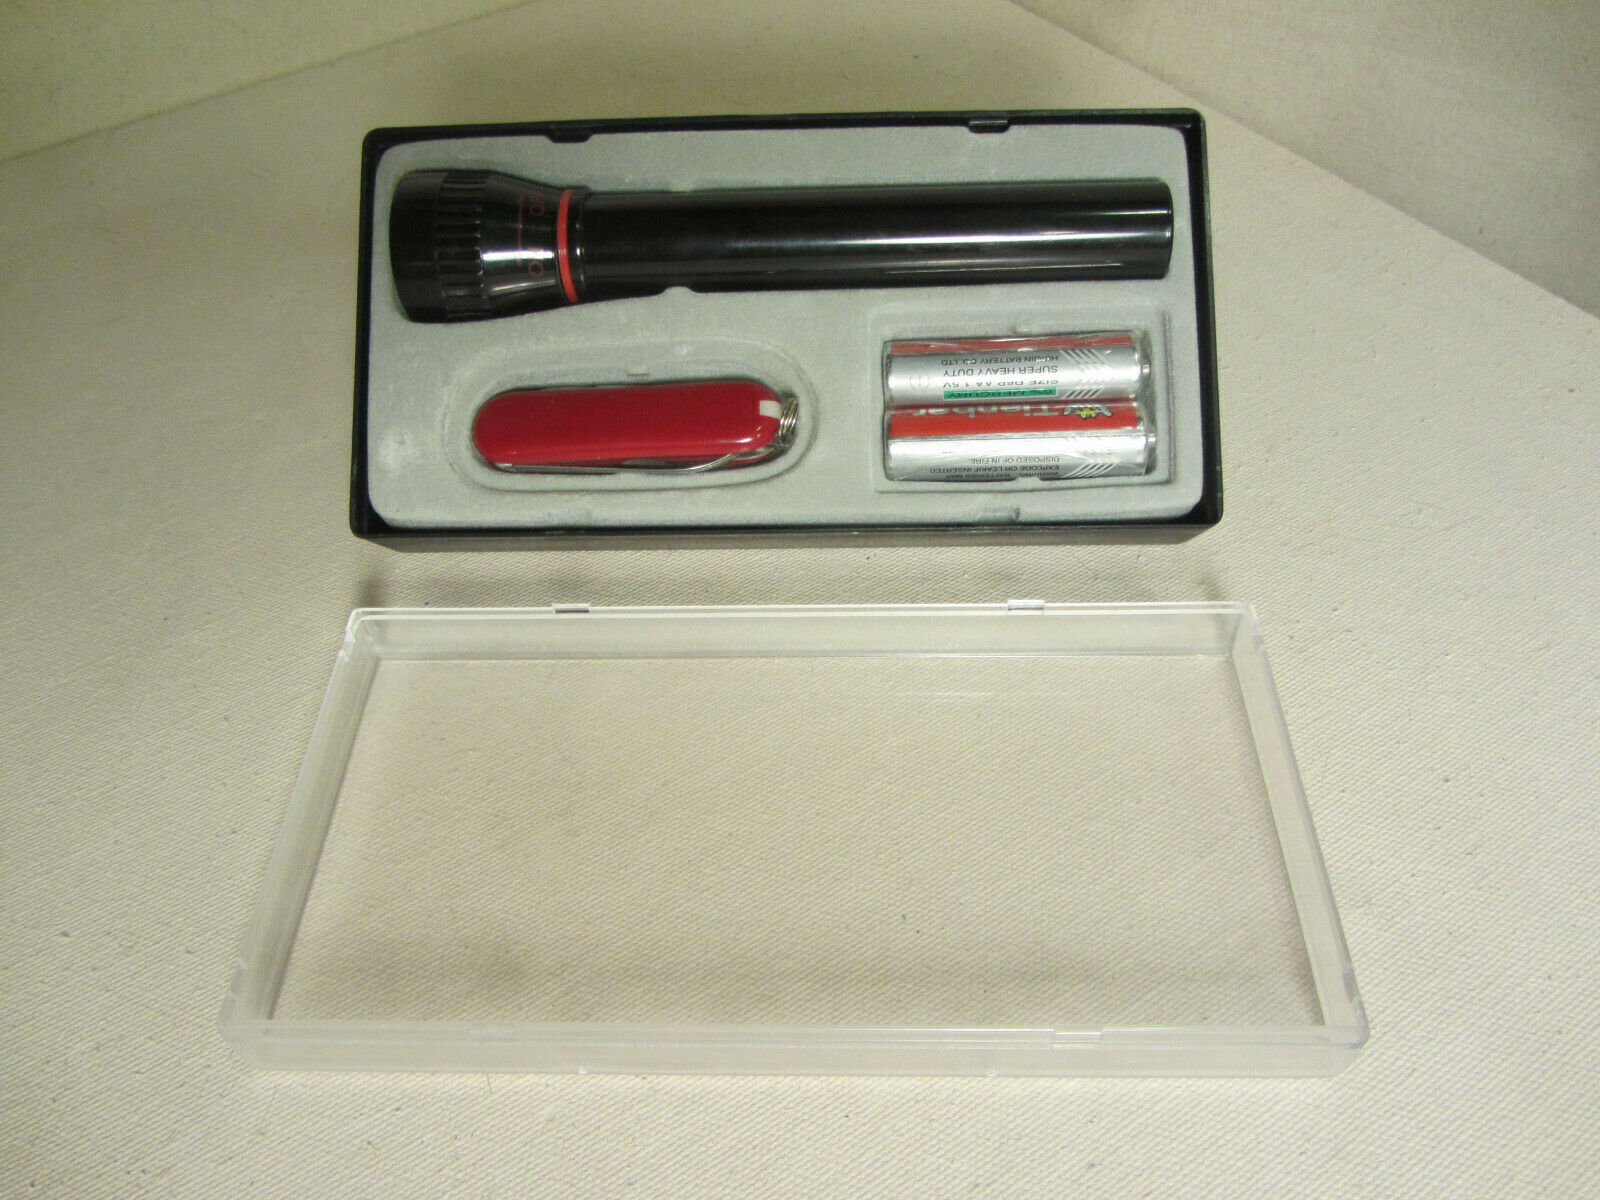 KNIFE & FLASHLIGHT GIFT SET W/ BATTERY INCLUDED